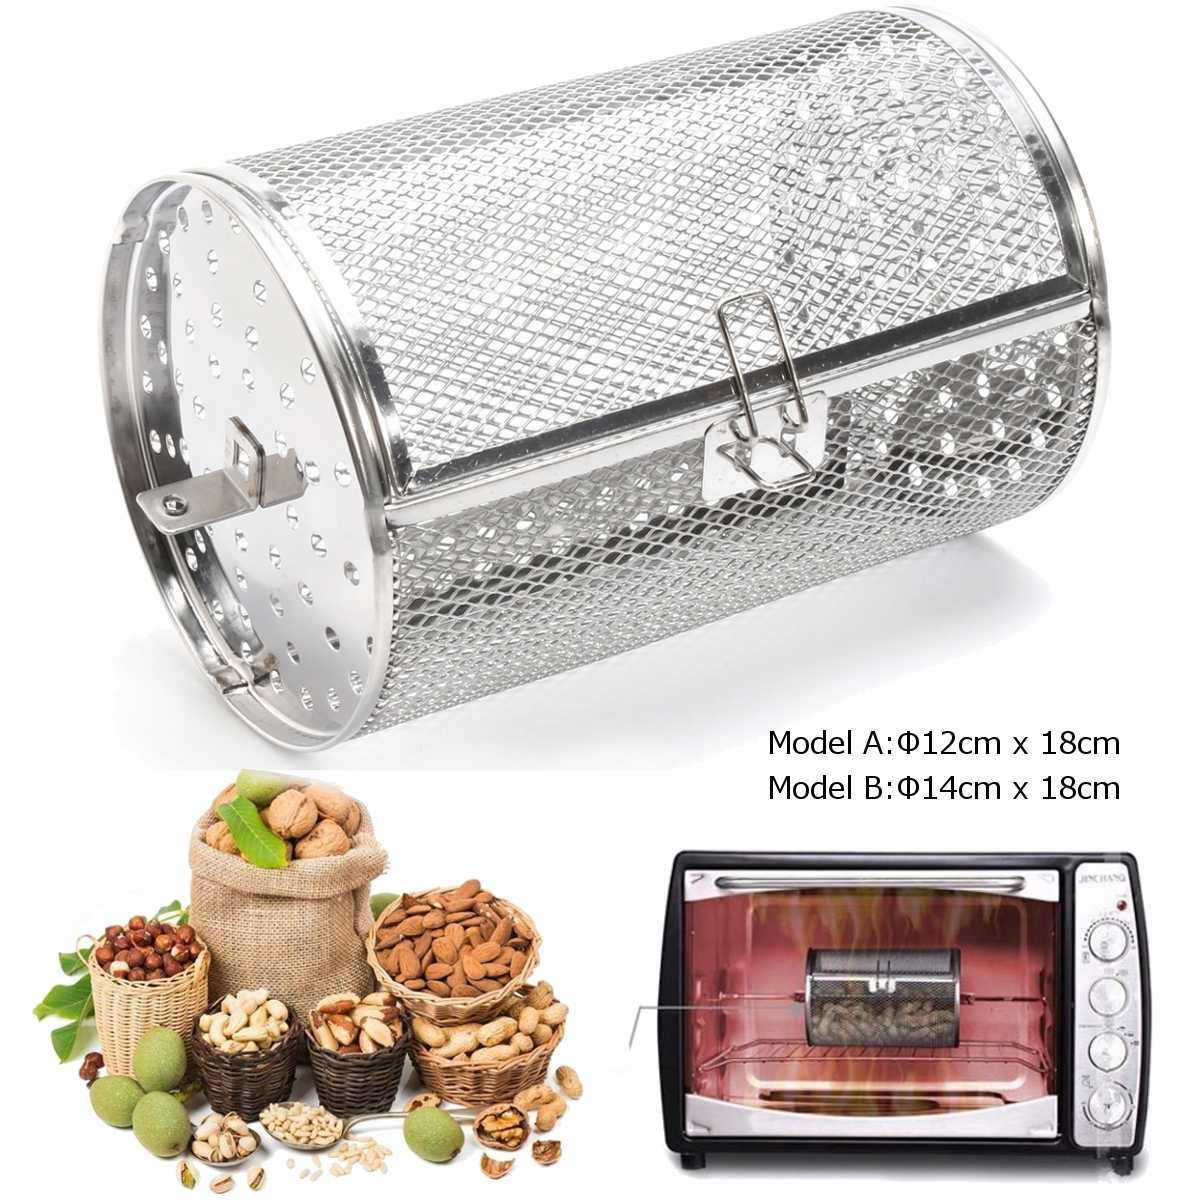 Storage Basket Peanut Coffee Beans Oven Roaster Grilled Cage Kitchen Stainless Steel BBQ Grill Rotisserie Drum 14*18cm/12*18cm(China)